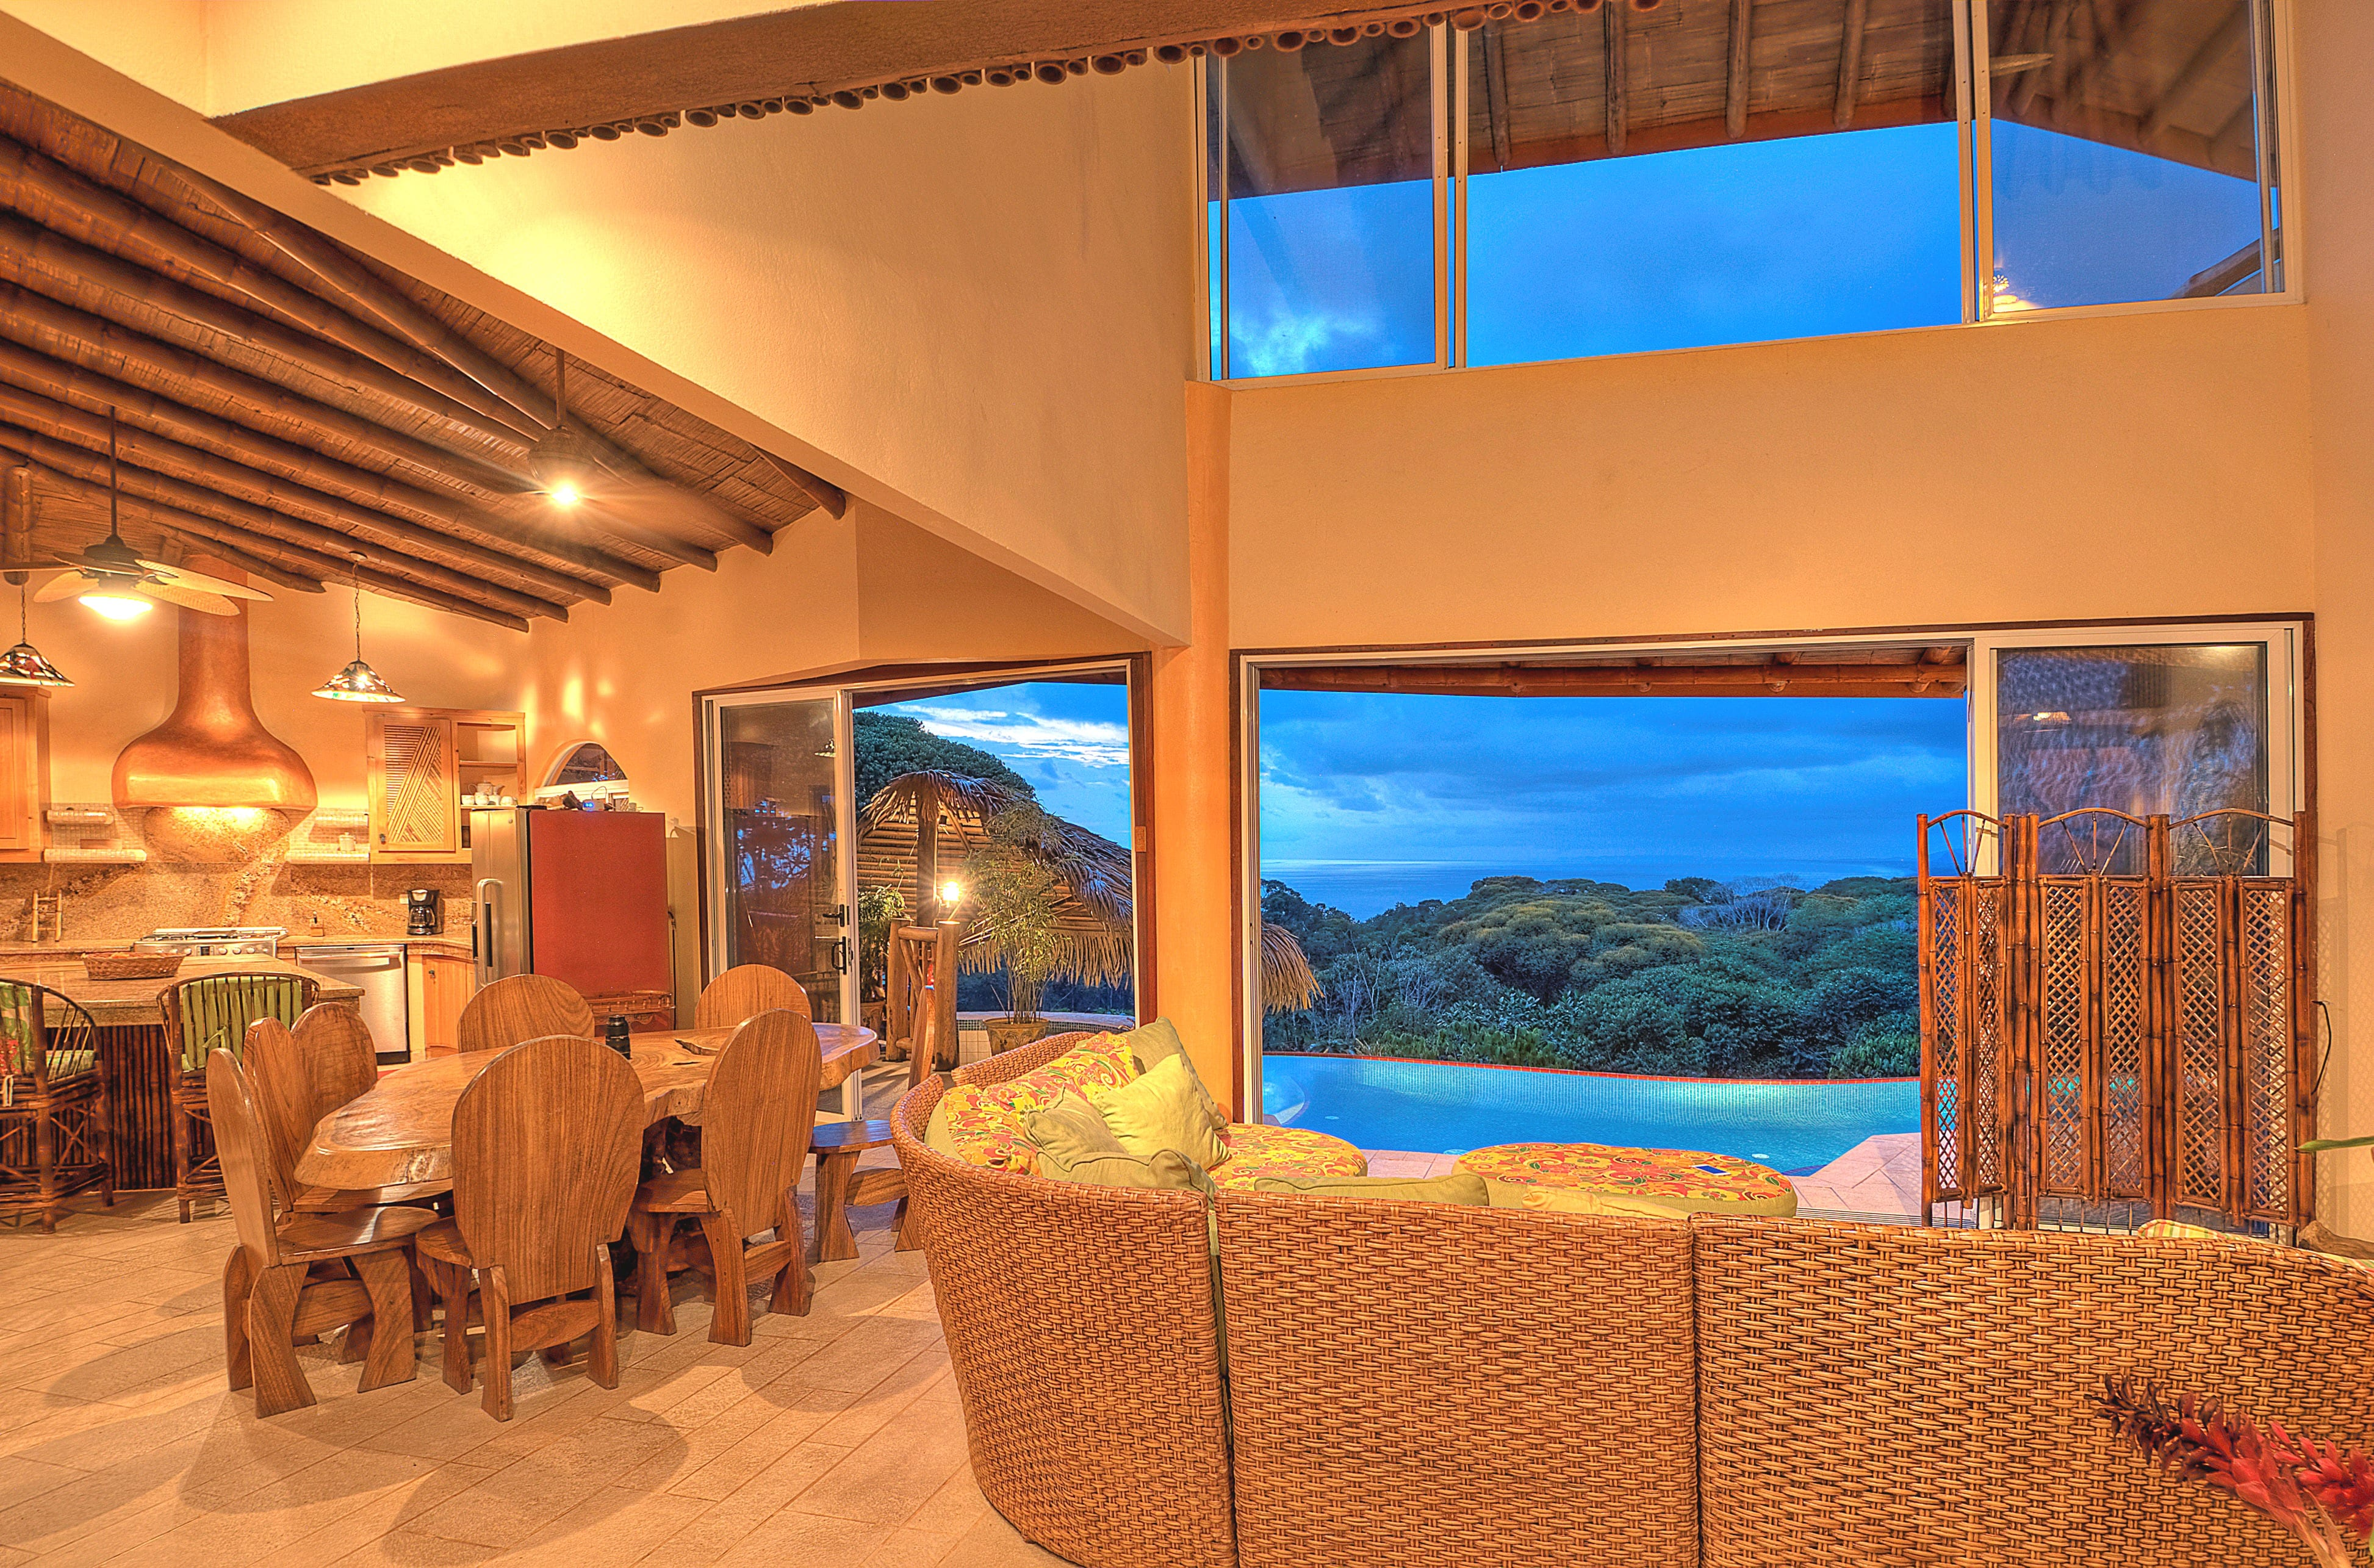 1.8 ACRES - 5 Bedroom Ocean View Home Plus 2 Guest Homes With Strong Rental History!!!